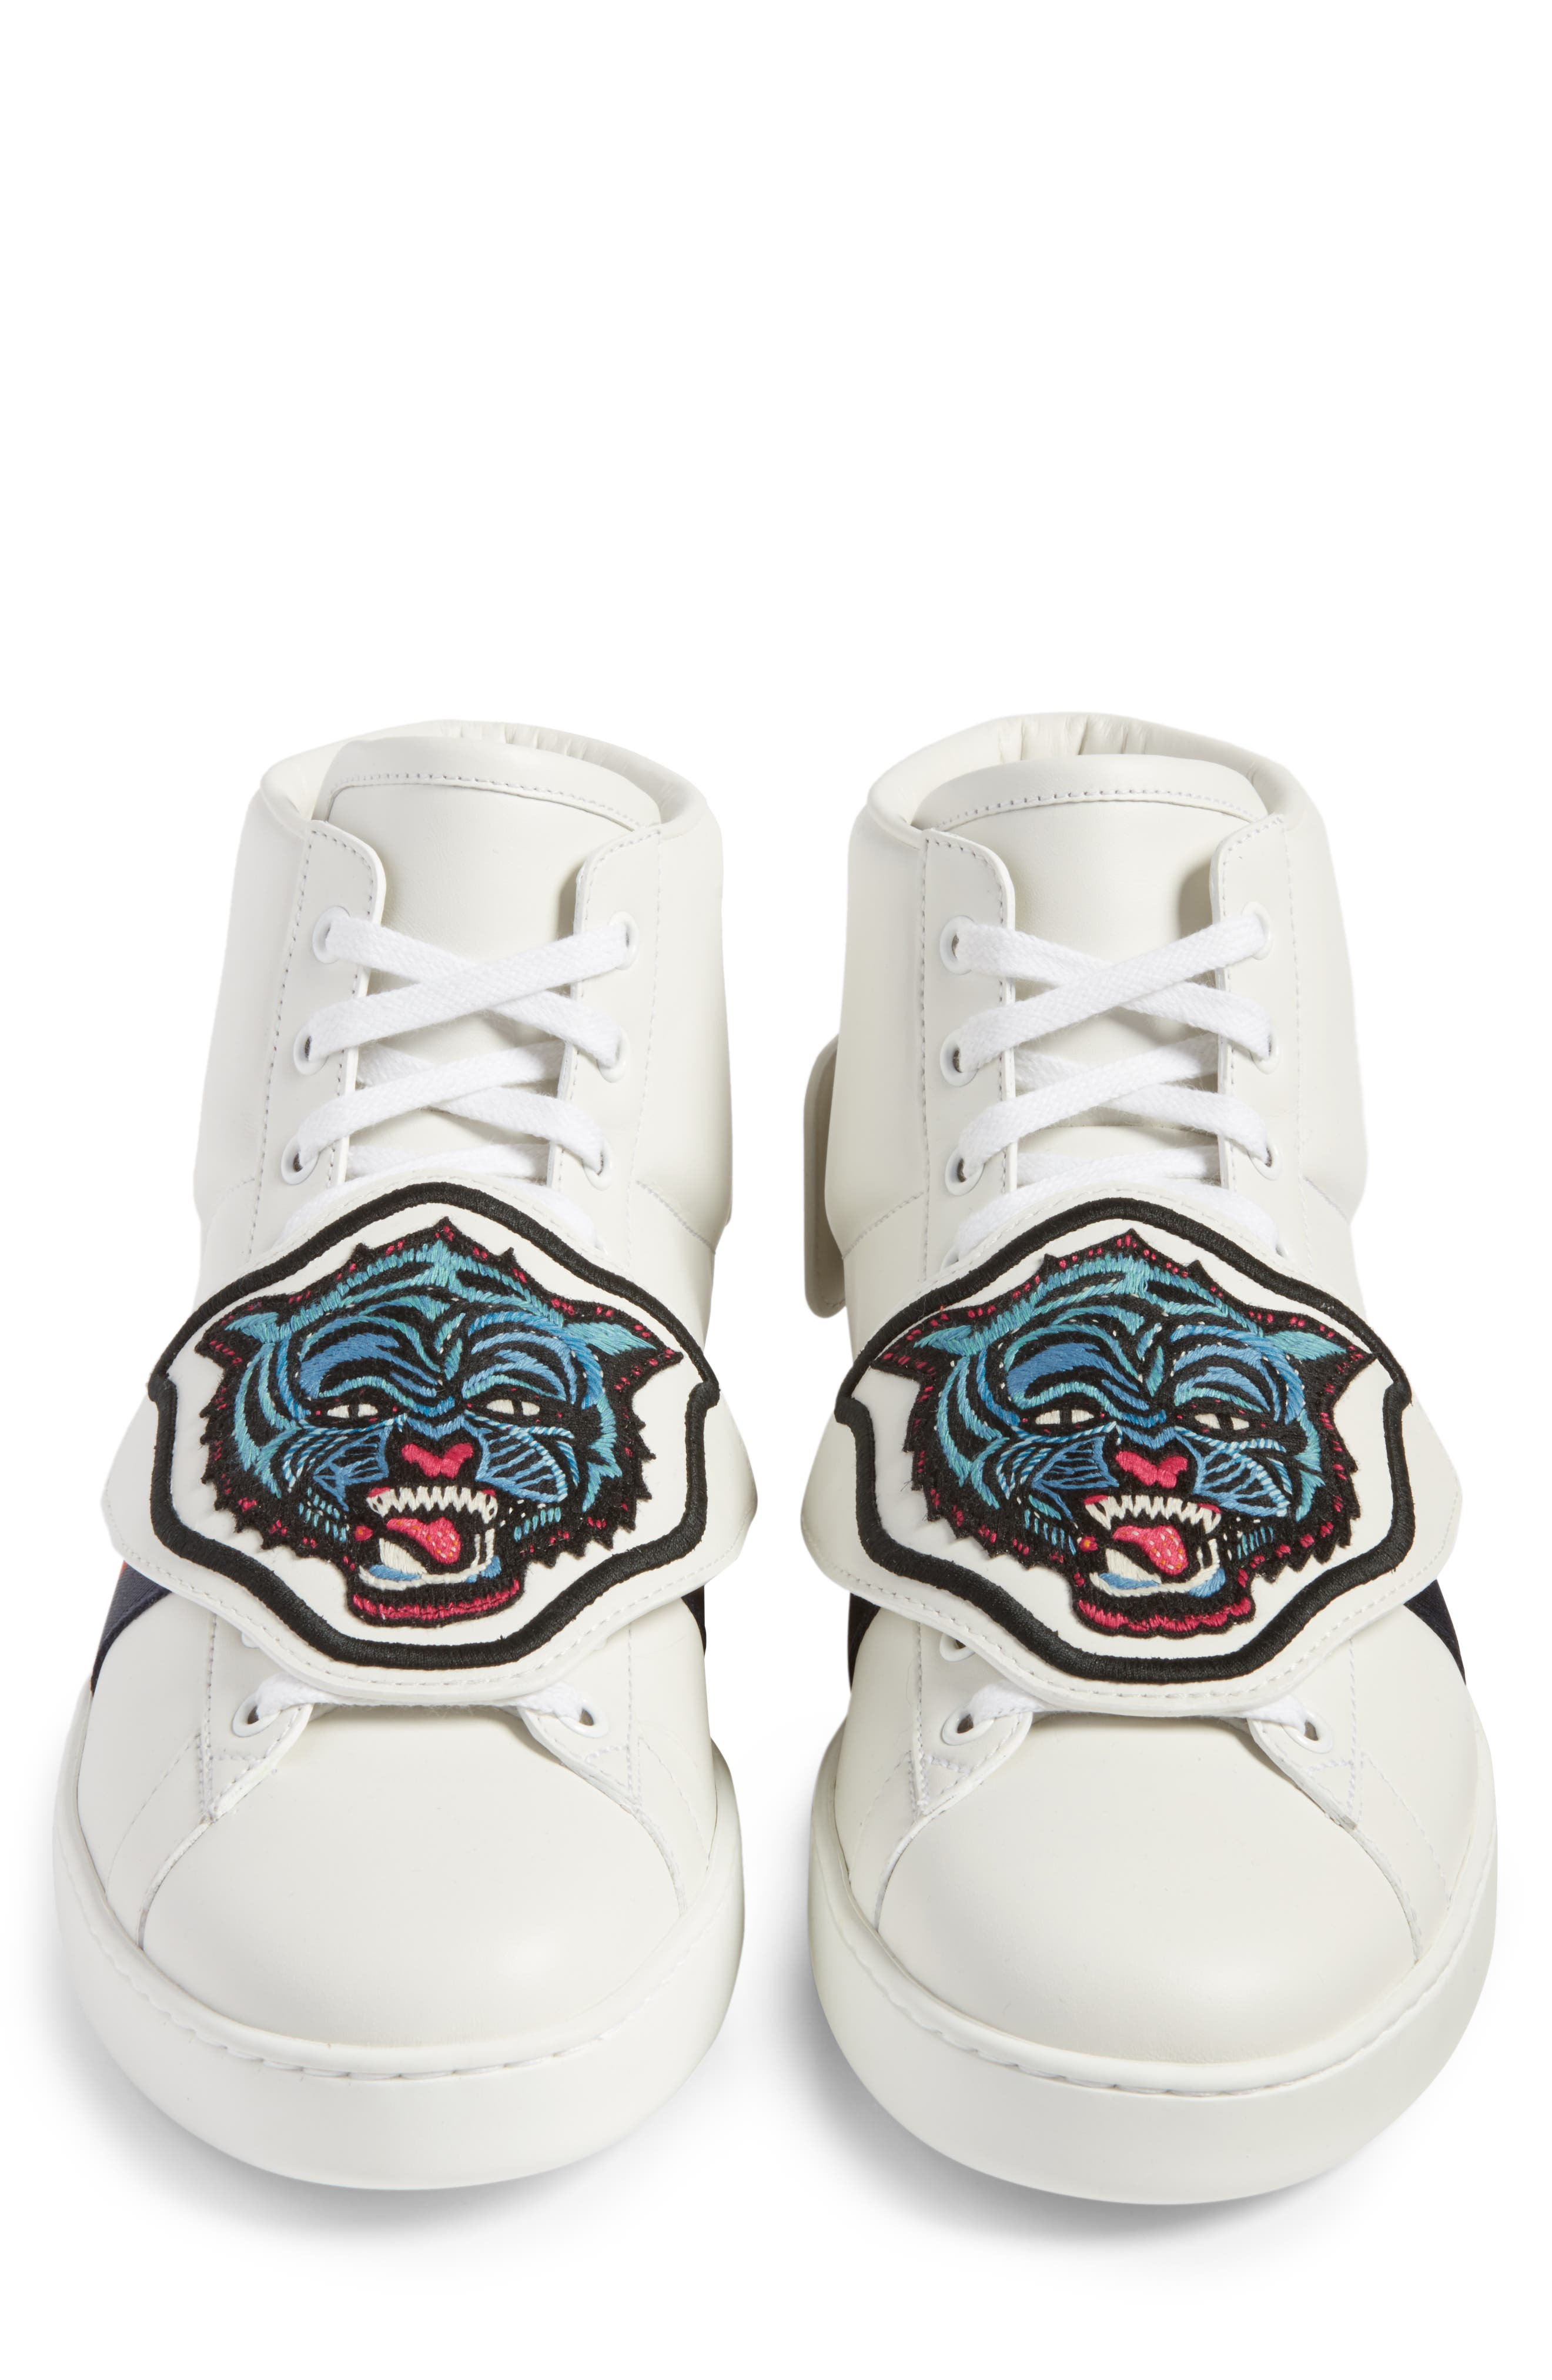 New Ace Jaguar Embroidered Patch High Top Sneaker,                             Alternate thumbnail 4, color,                             138